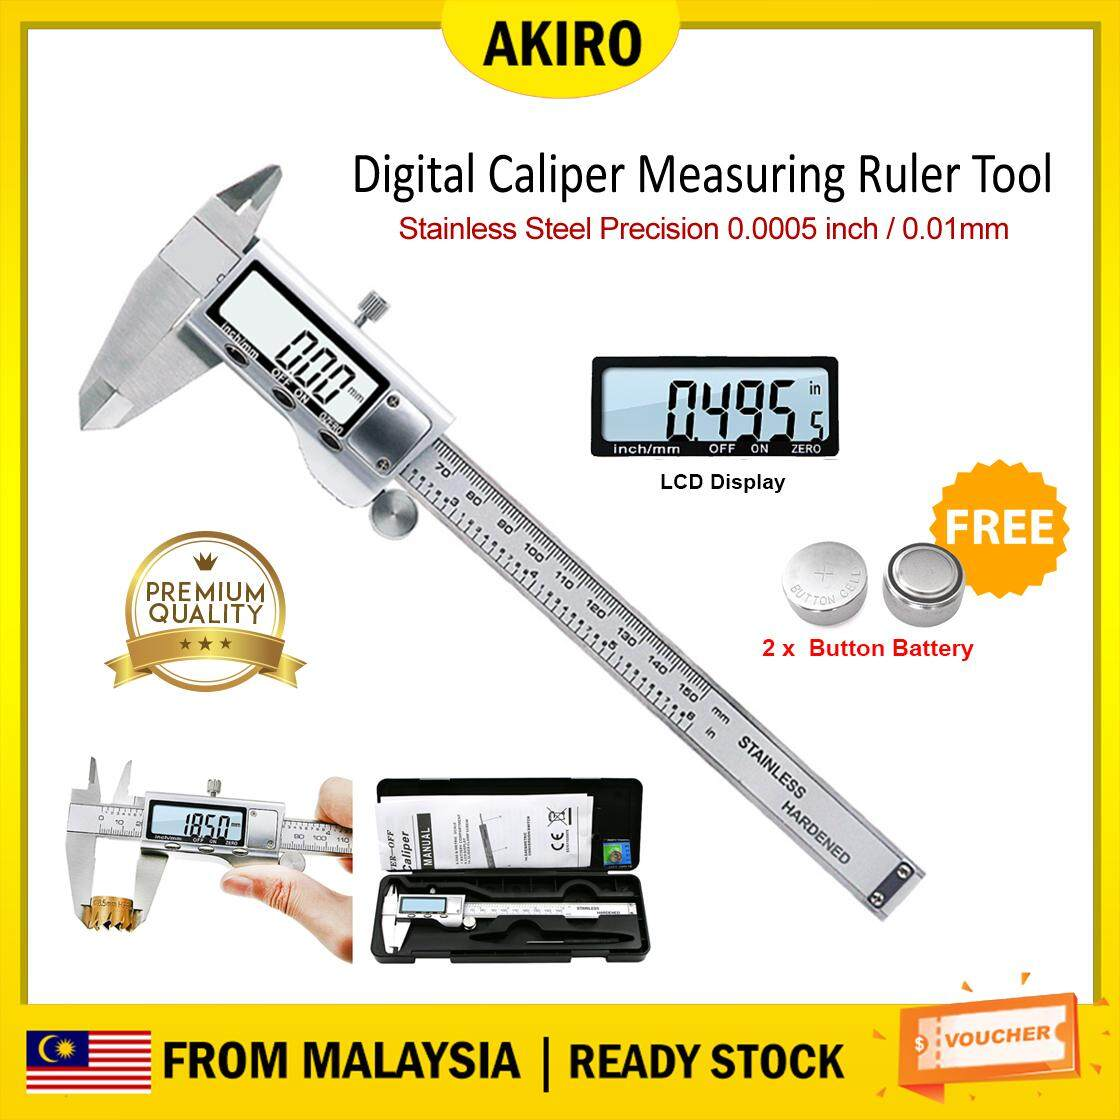 AKIRO HOME Malaysia Stainless Steel Electronic Digital Caliper Measuring Ruler Tool Inch MM LED Screen Precision 0.0005 /0.01mm Measuring Inside Outside Depth Accuracy